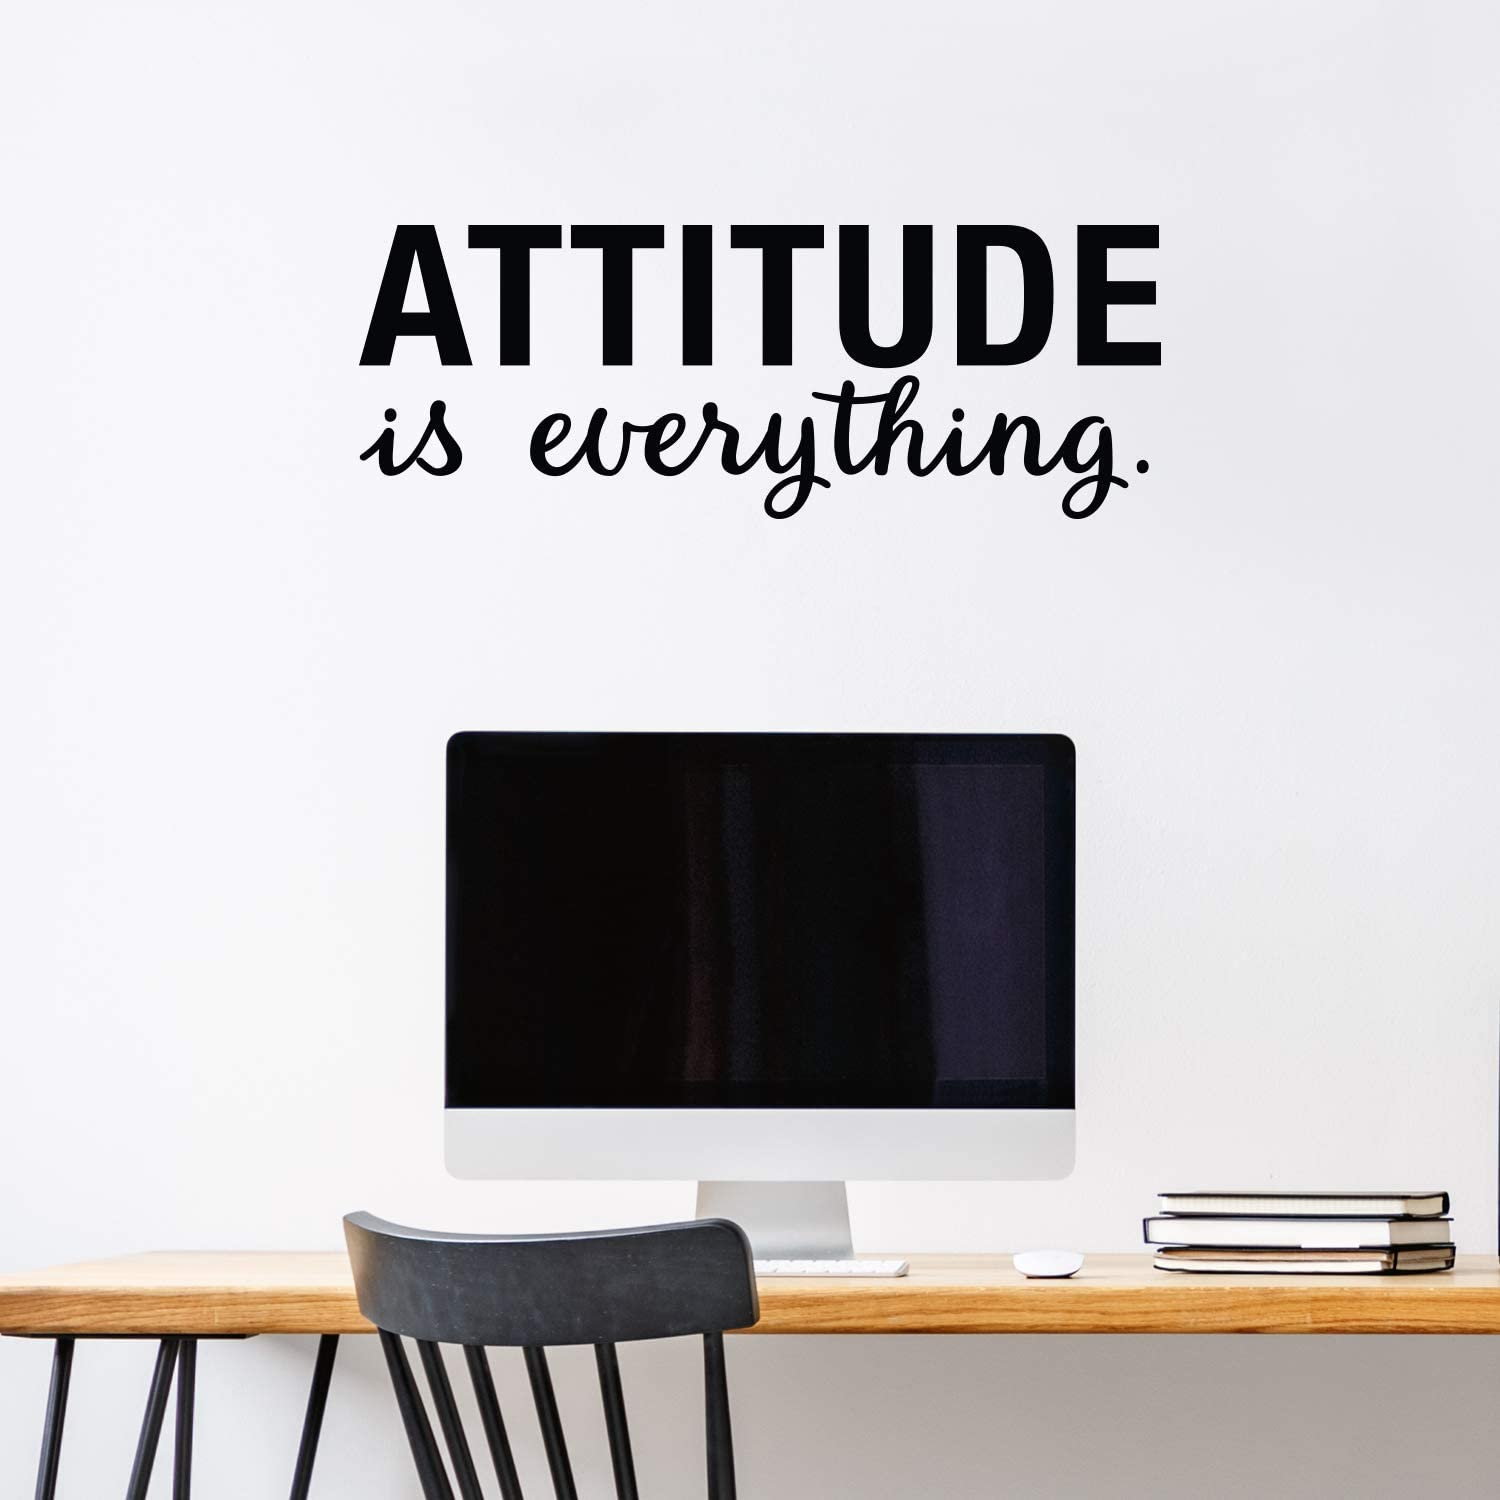 """Vinyl Wall Art Decal - Attitude is Everything - 11"""" x 30"""" - Modern Cute Optimistic Quote Sticker for Bedroom Closet Living Room Playroom Office Classroom School Coffee Shop Decor"""